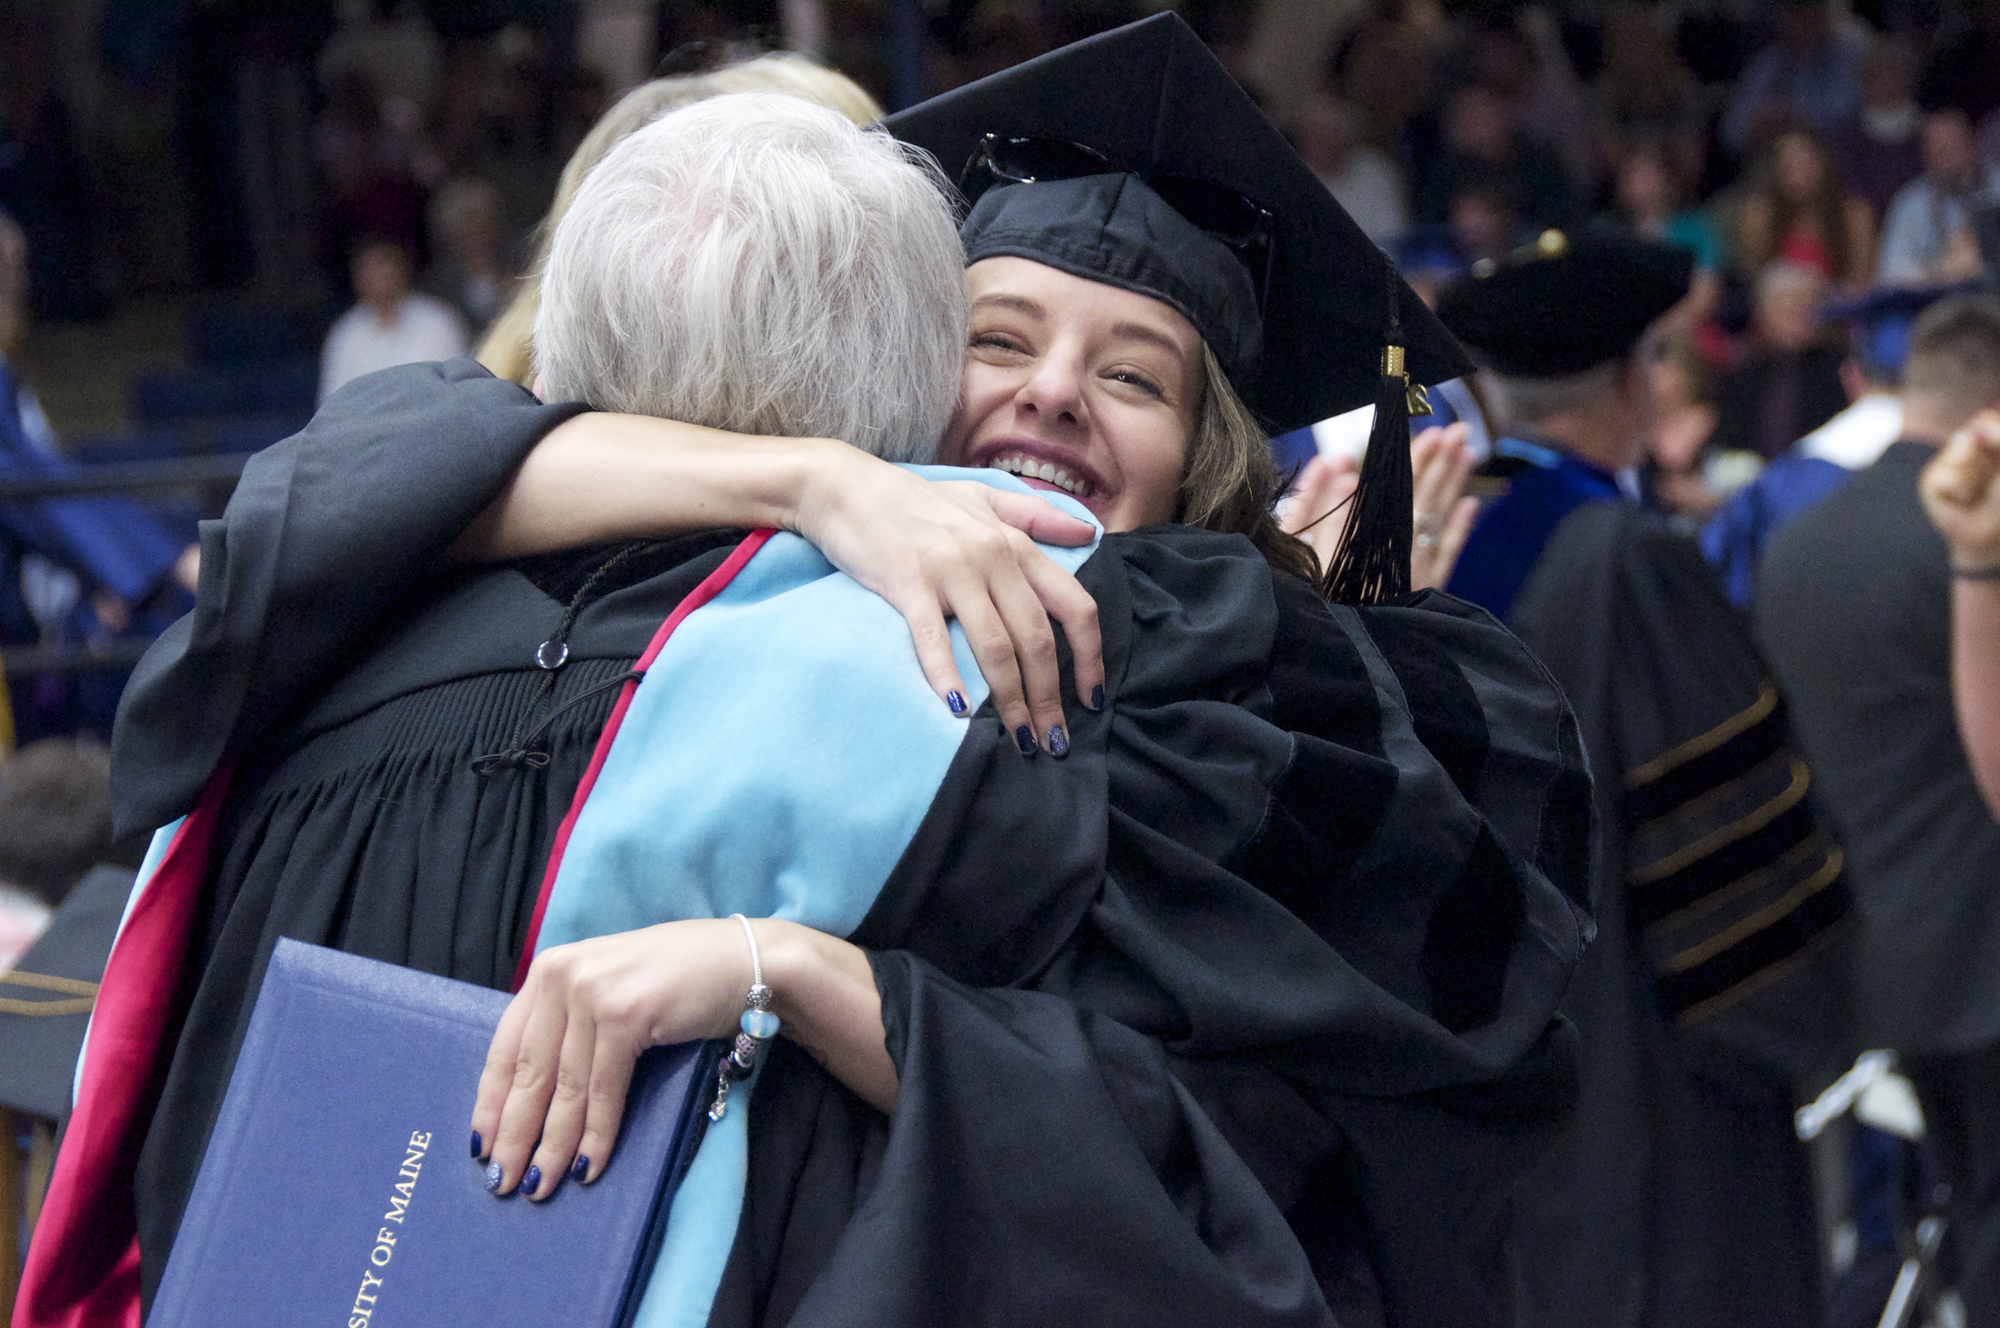 Two students hugging at commencement